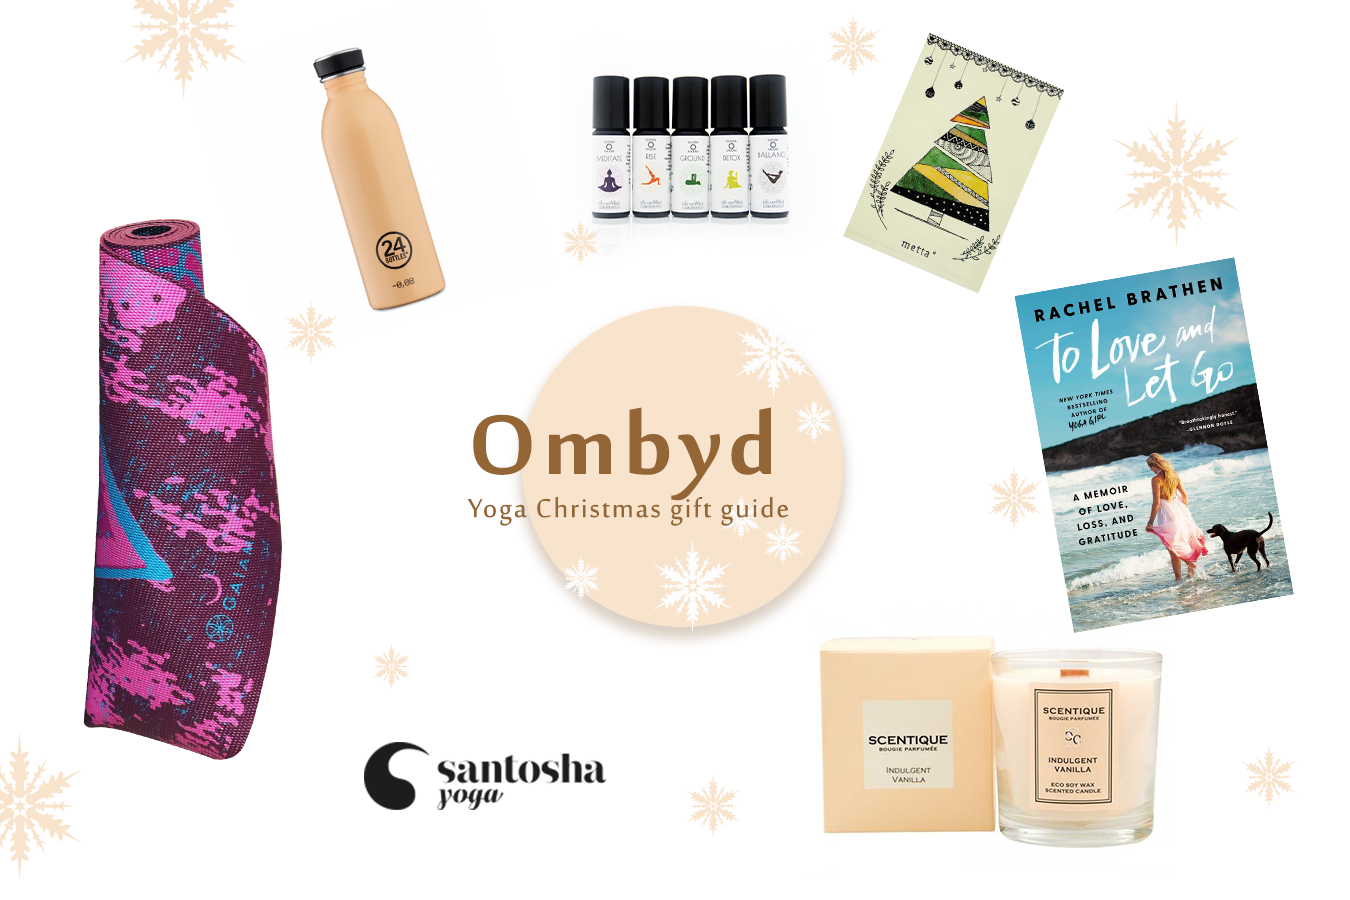 Ombyd Yoga Christmas Gift Guide Ombyd